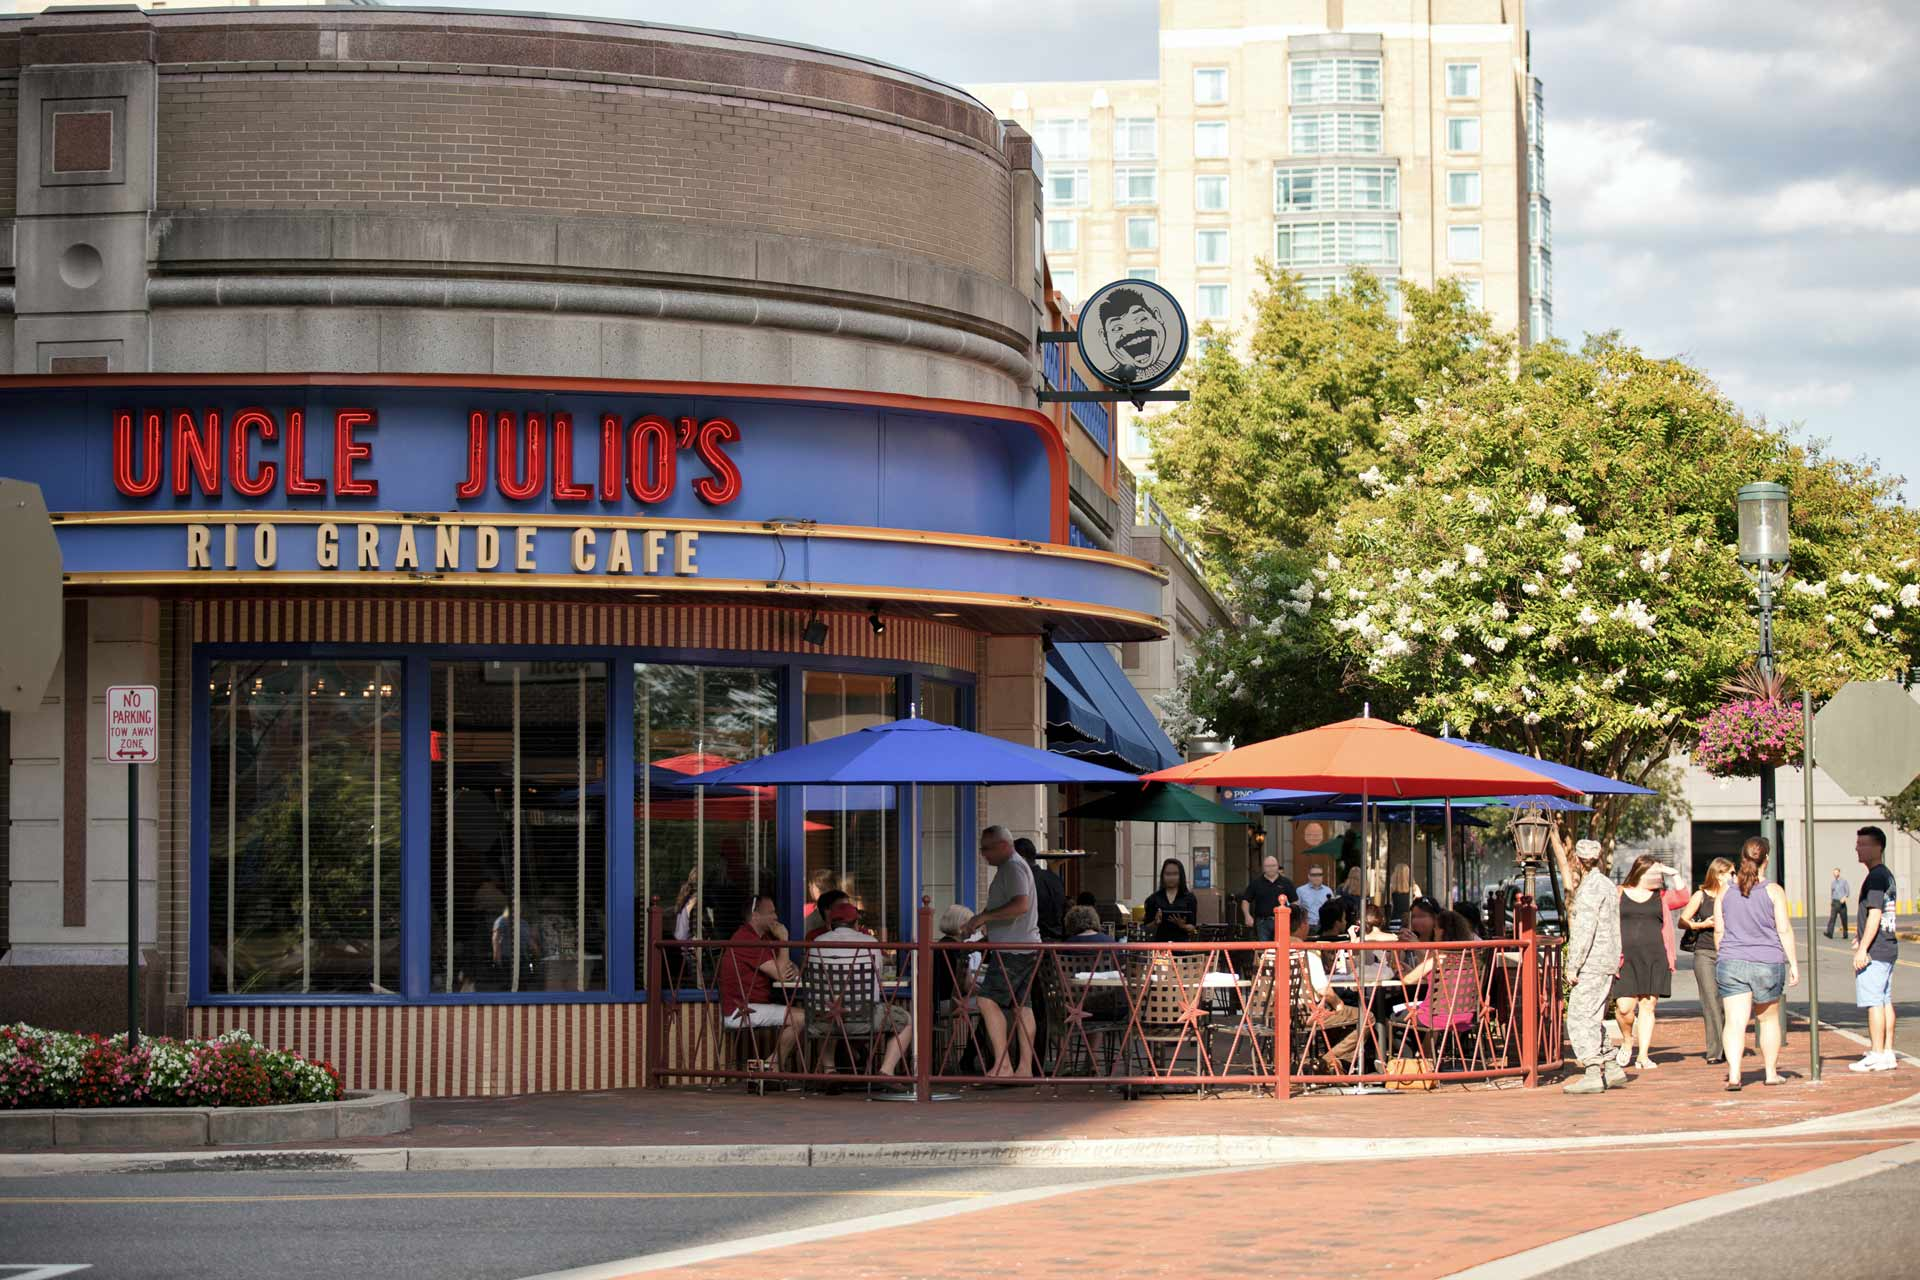 Uncle Julio's storefront and outdoor dining